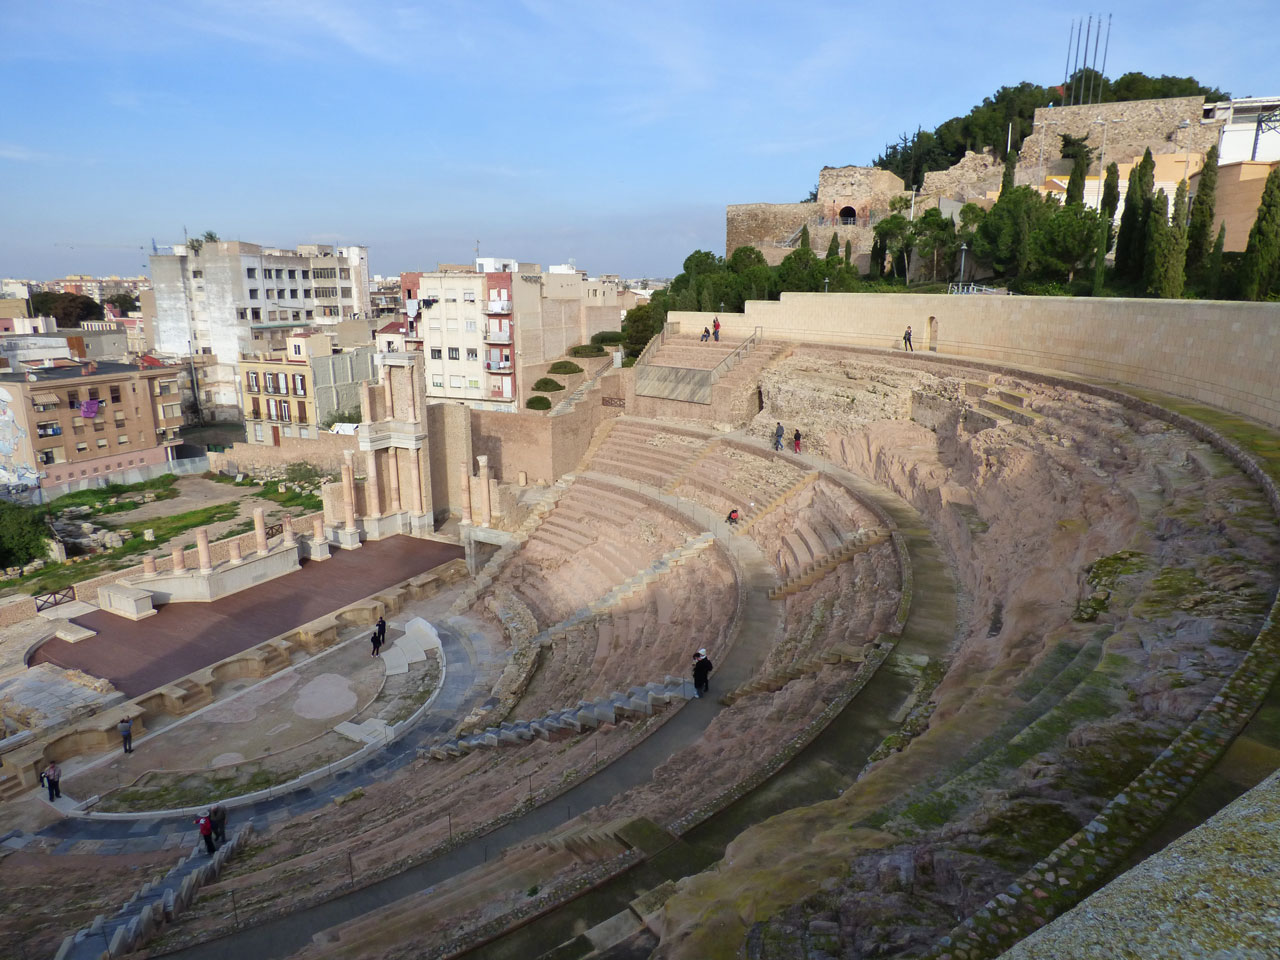 Roman Theatre, Cartagena, Spain